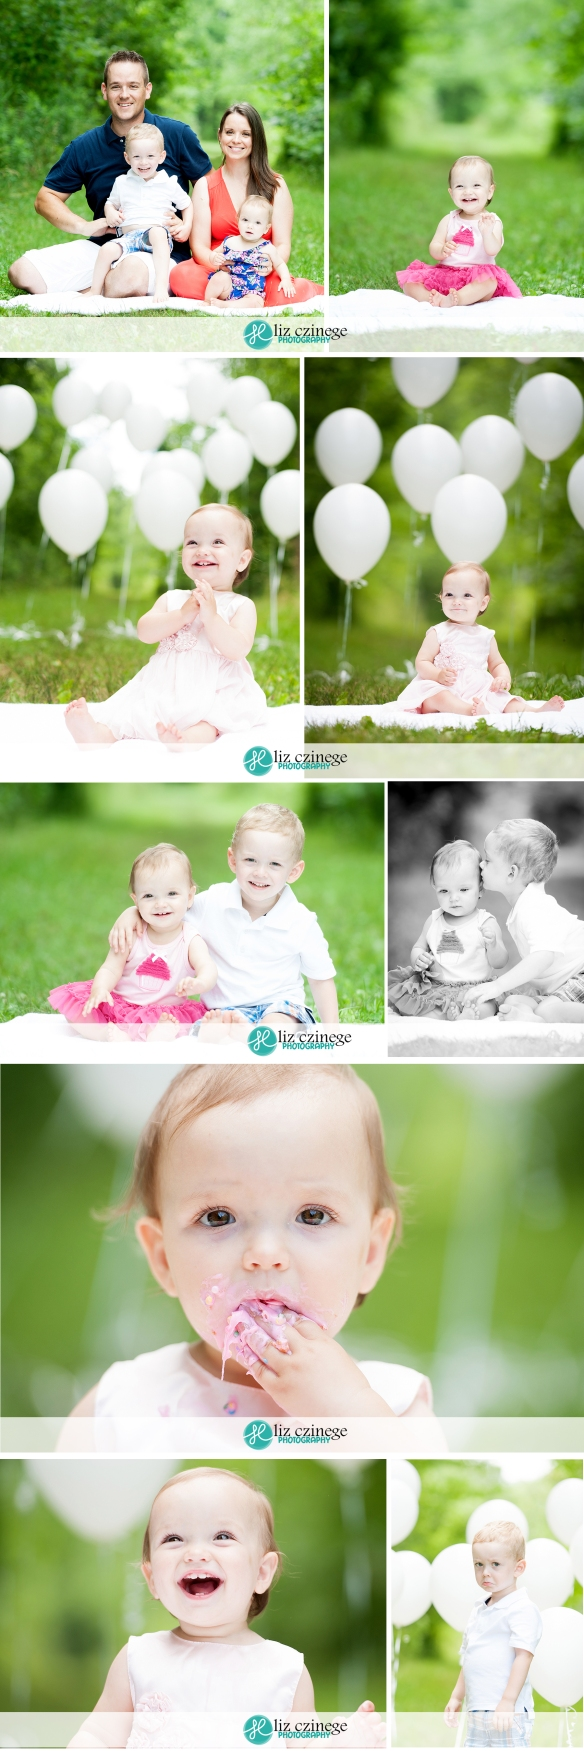 liz_czinege_photography_family_child_newborn_7